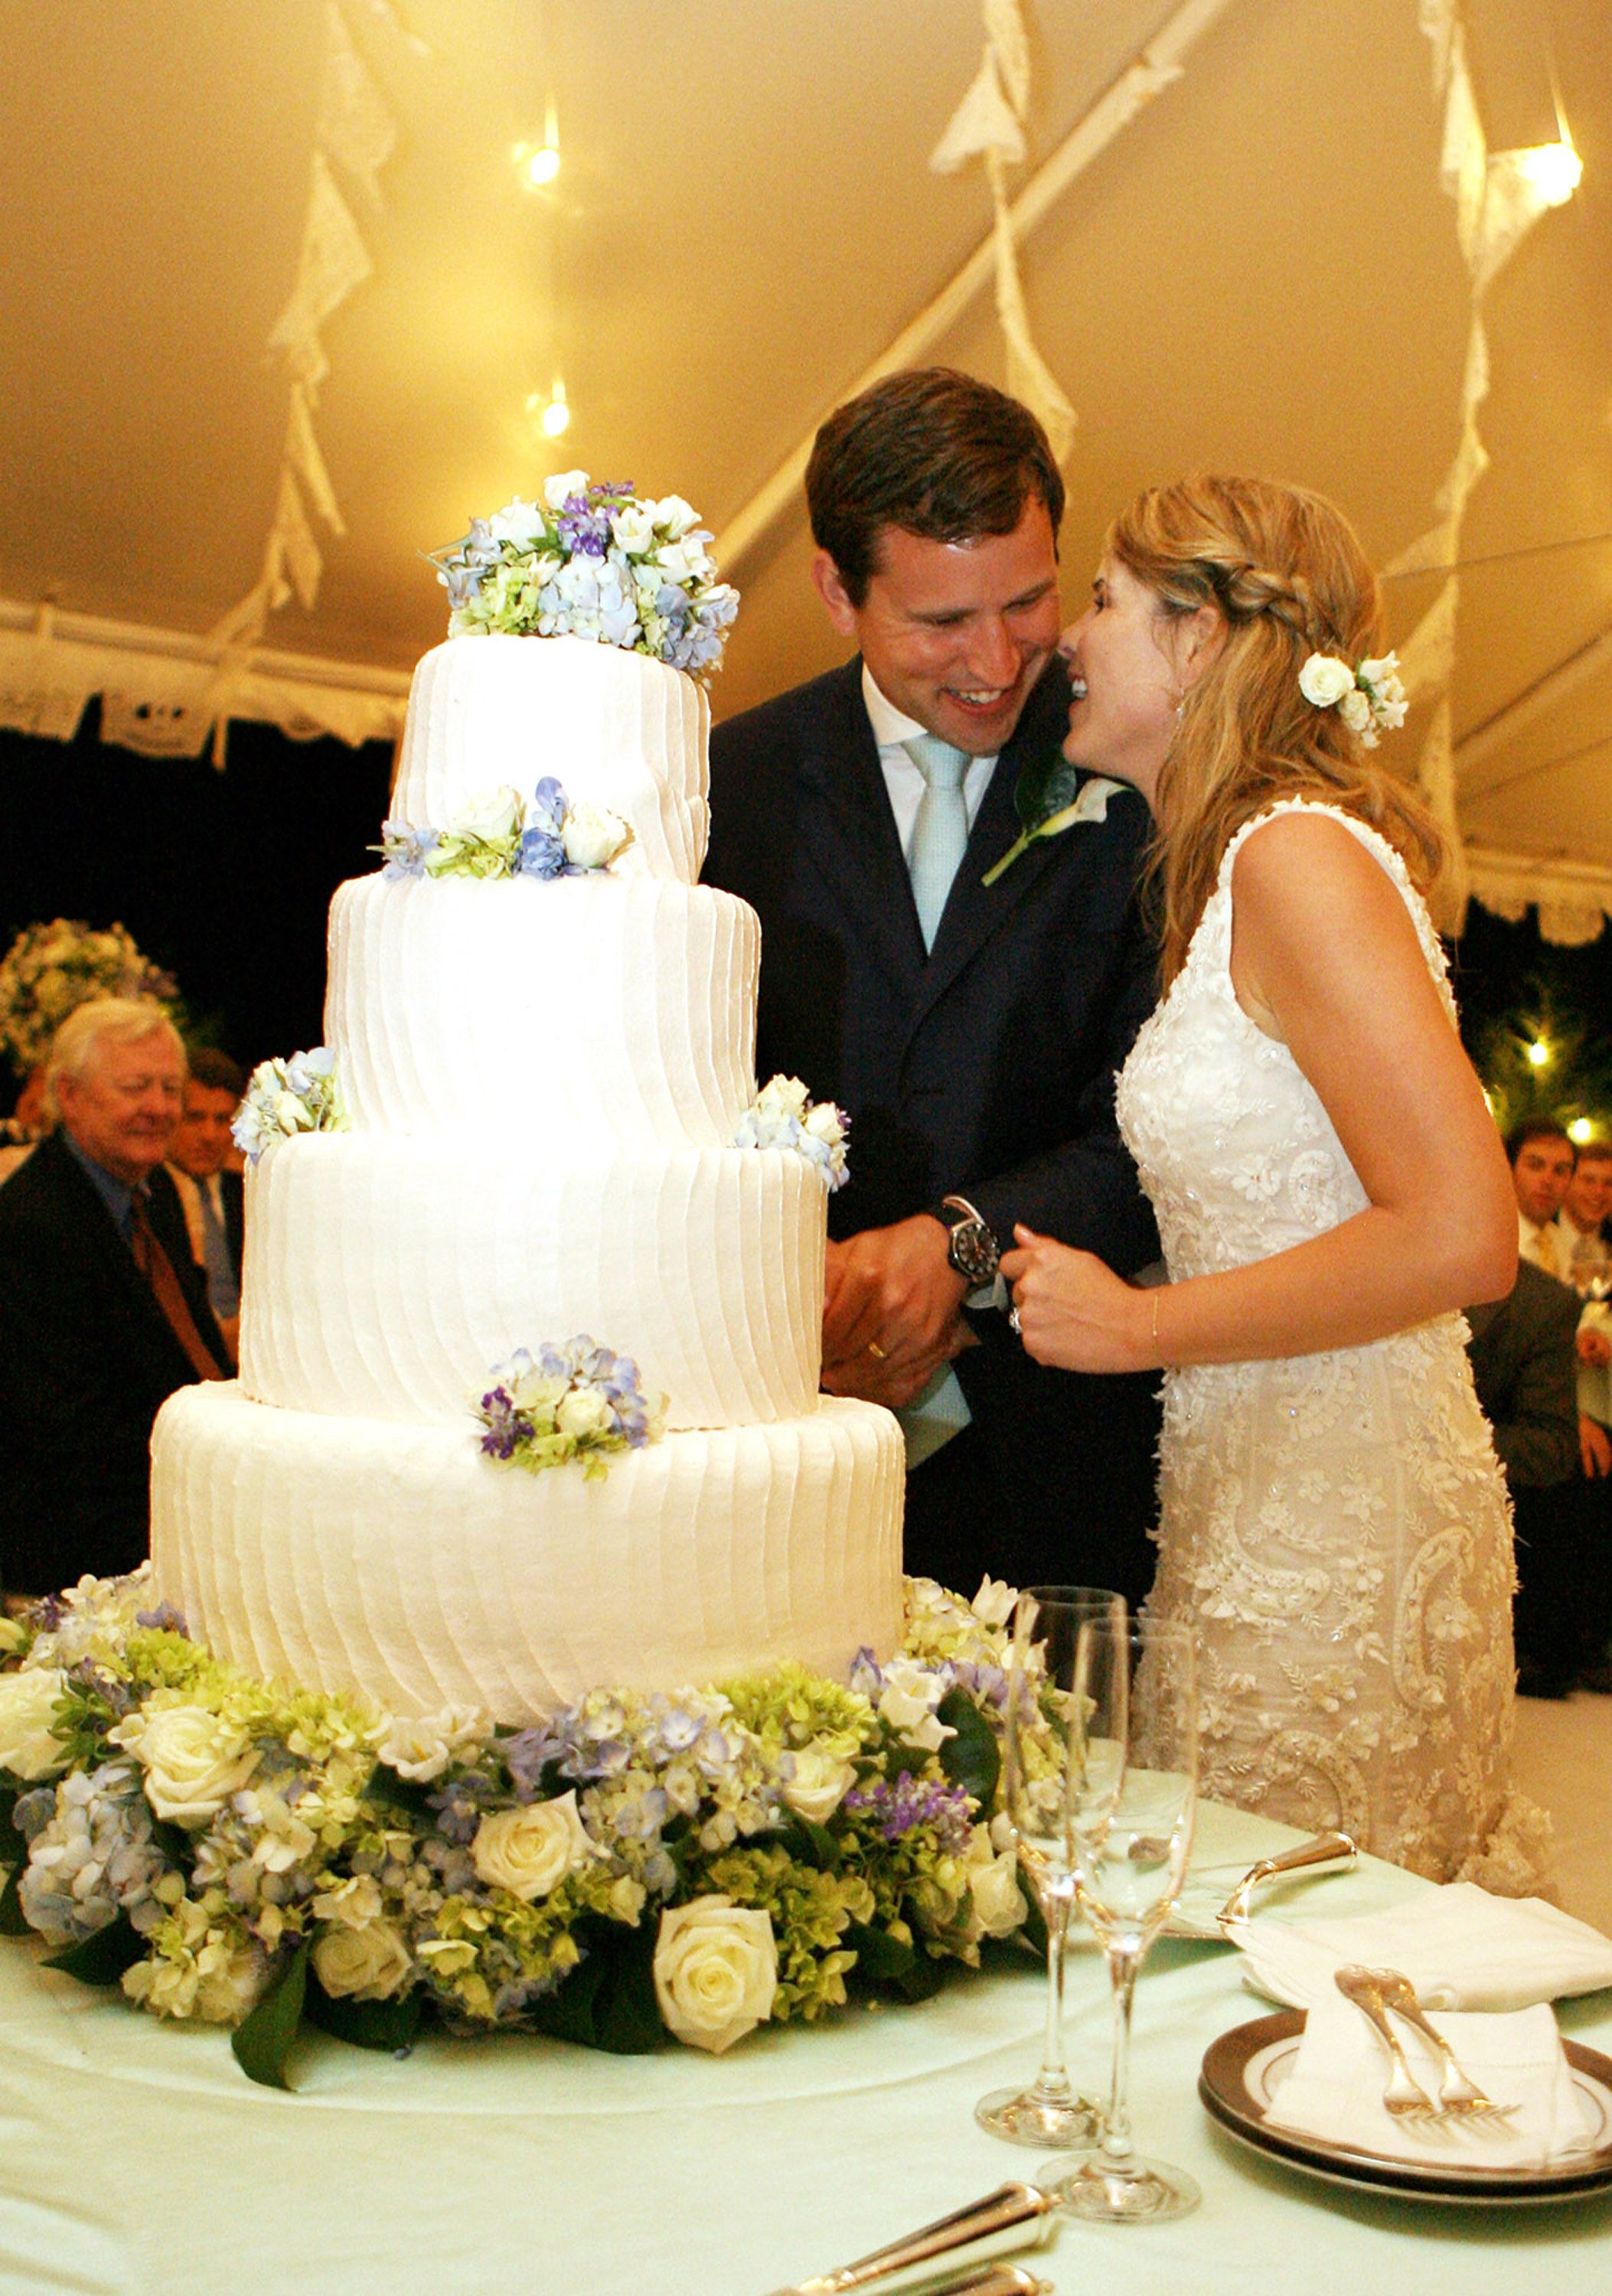 Jenna Bush and Henry Hager at their wedding, March 2008, Texas| Photo: Getty Images